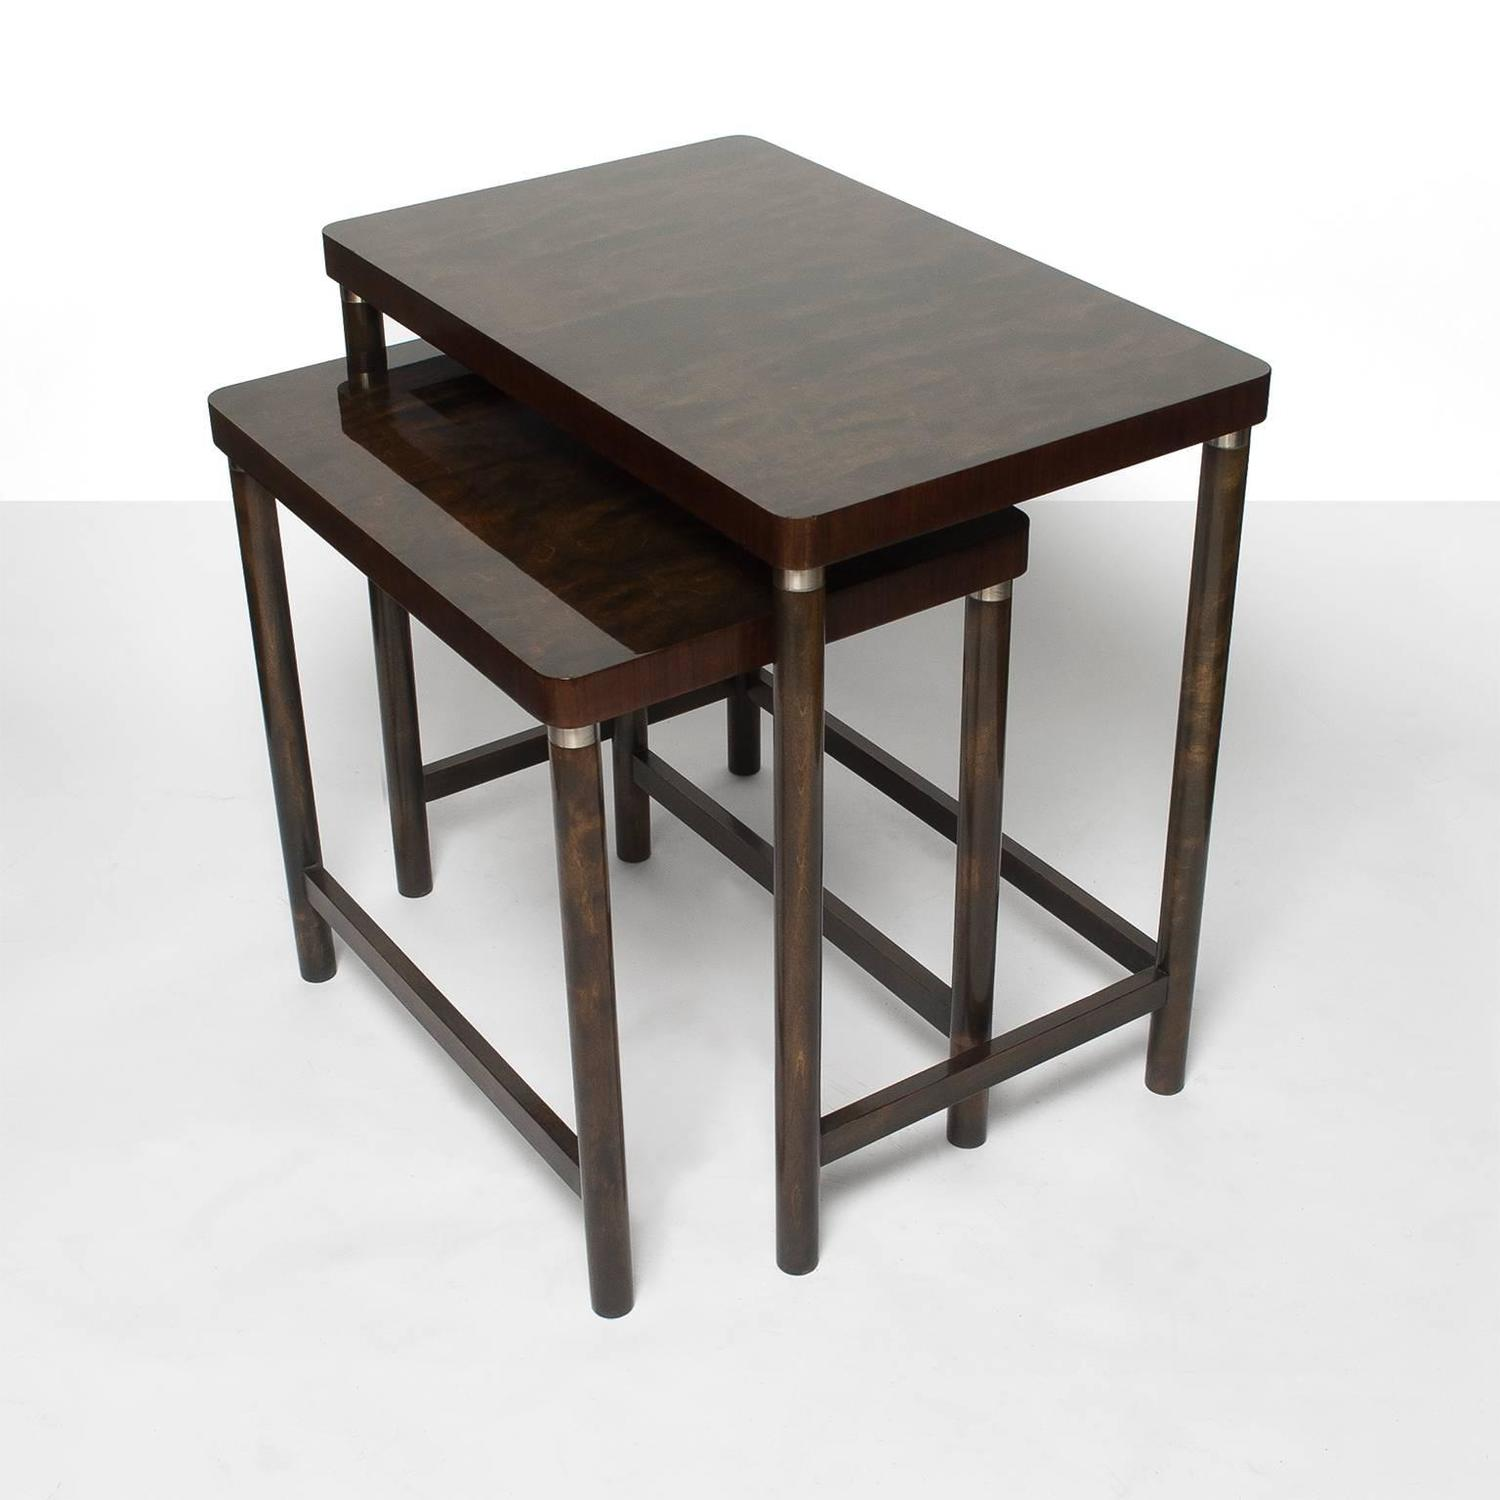 Marvelous photograph of Scandinavian Modern Set of Two Nesting Tables in Stained Birch and  with #322721 color and 1500x1500 pixels